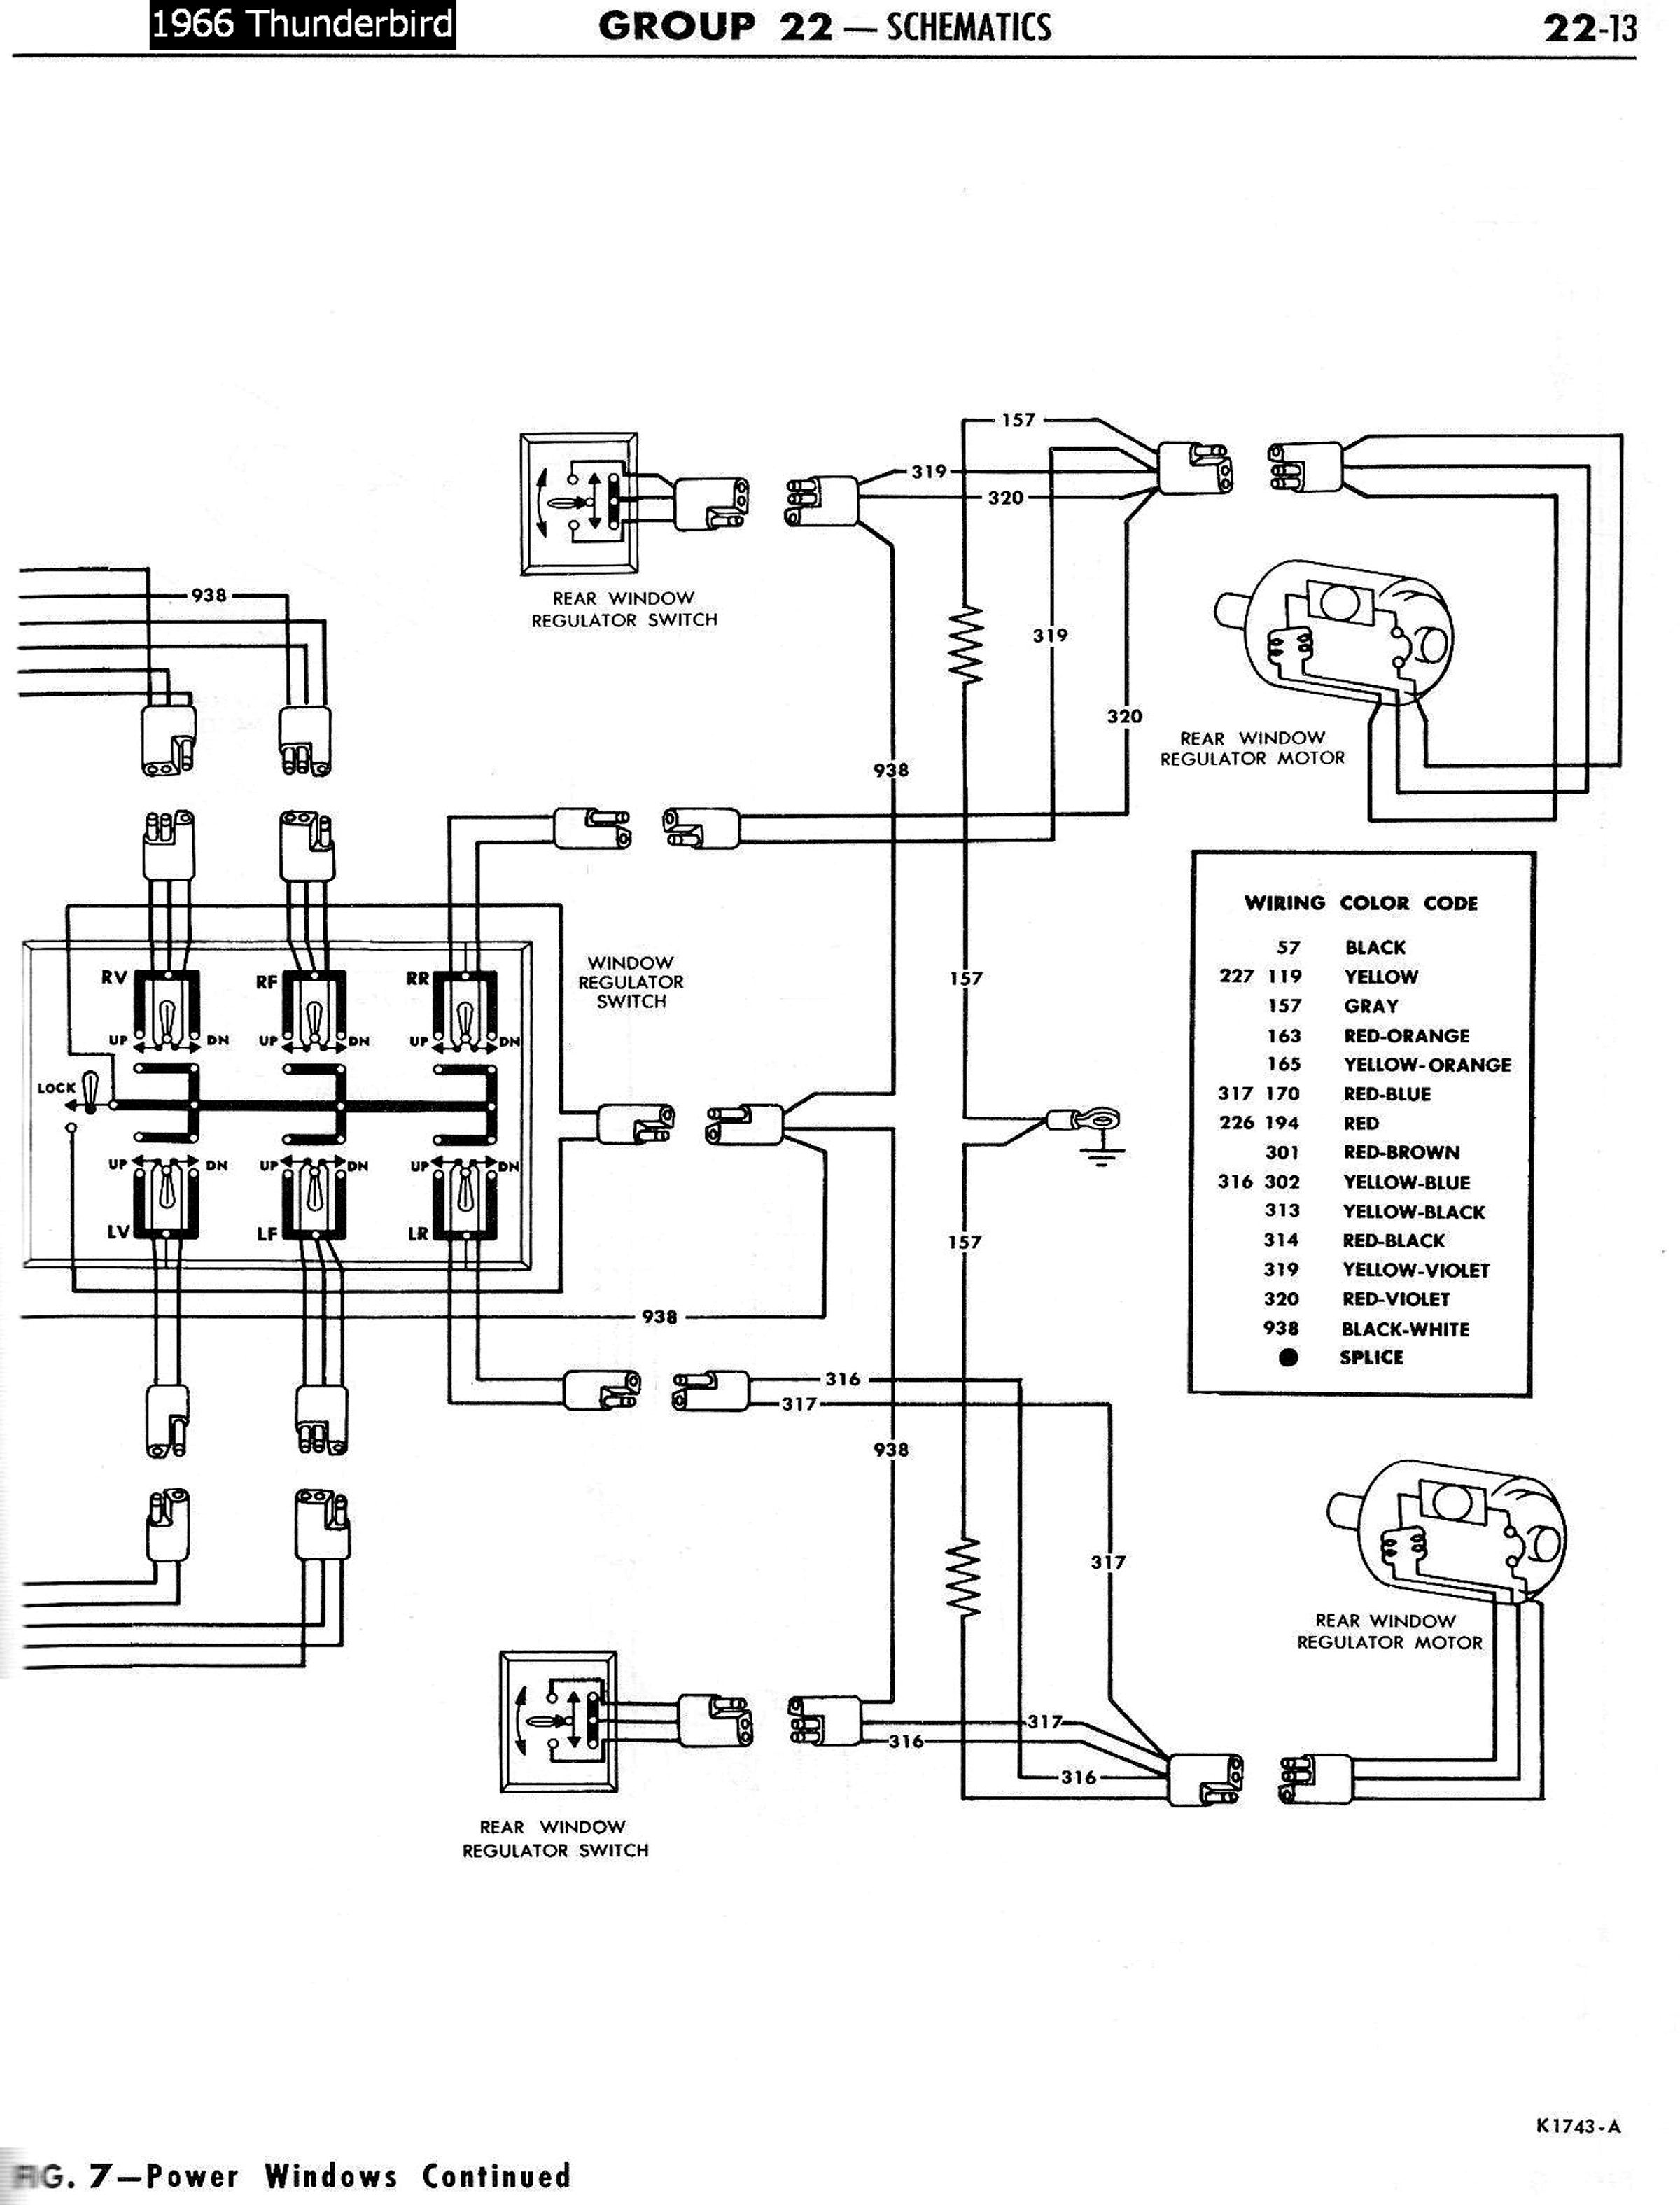 1970 ford f100 wiring harness data wiring diagram today 1966 Ford F100 1969 f100 wiring harness wiring library 1962 ford f100 wiring diagram 1968 ford turn signal wiring